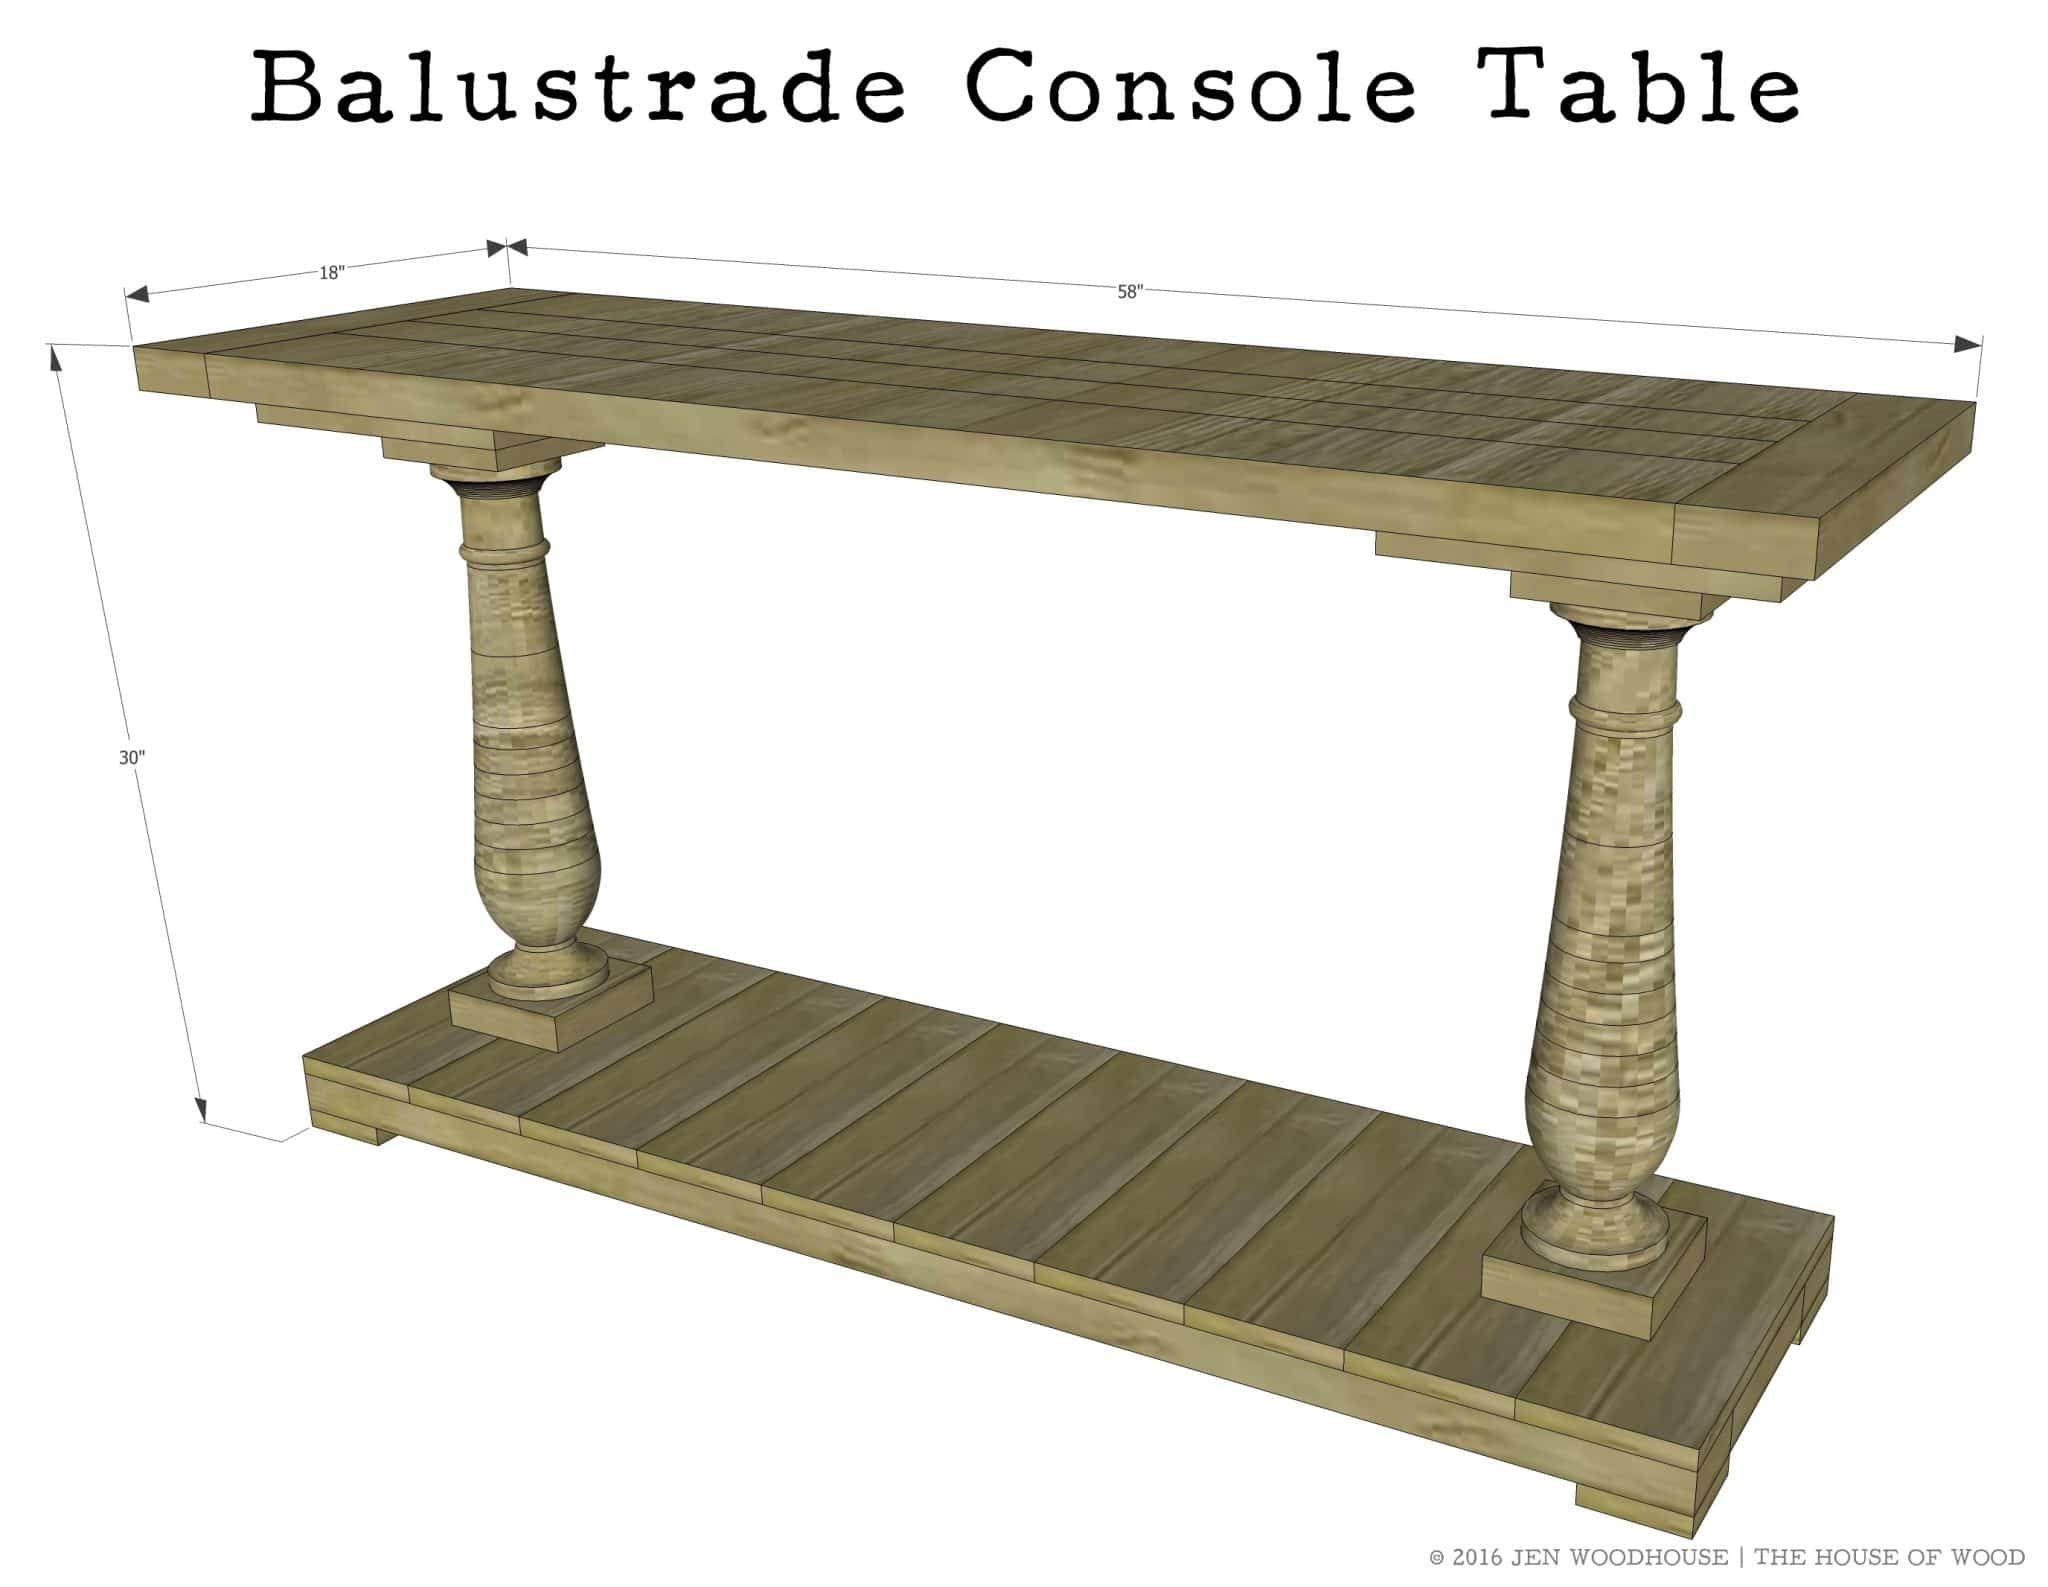 How to build a DIY Restoration Hardware-inspired Balustrade Console Table - Free plans!